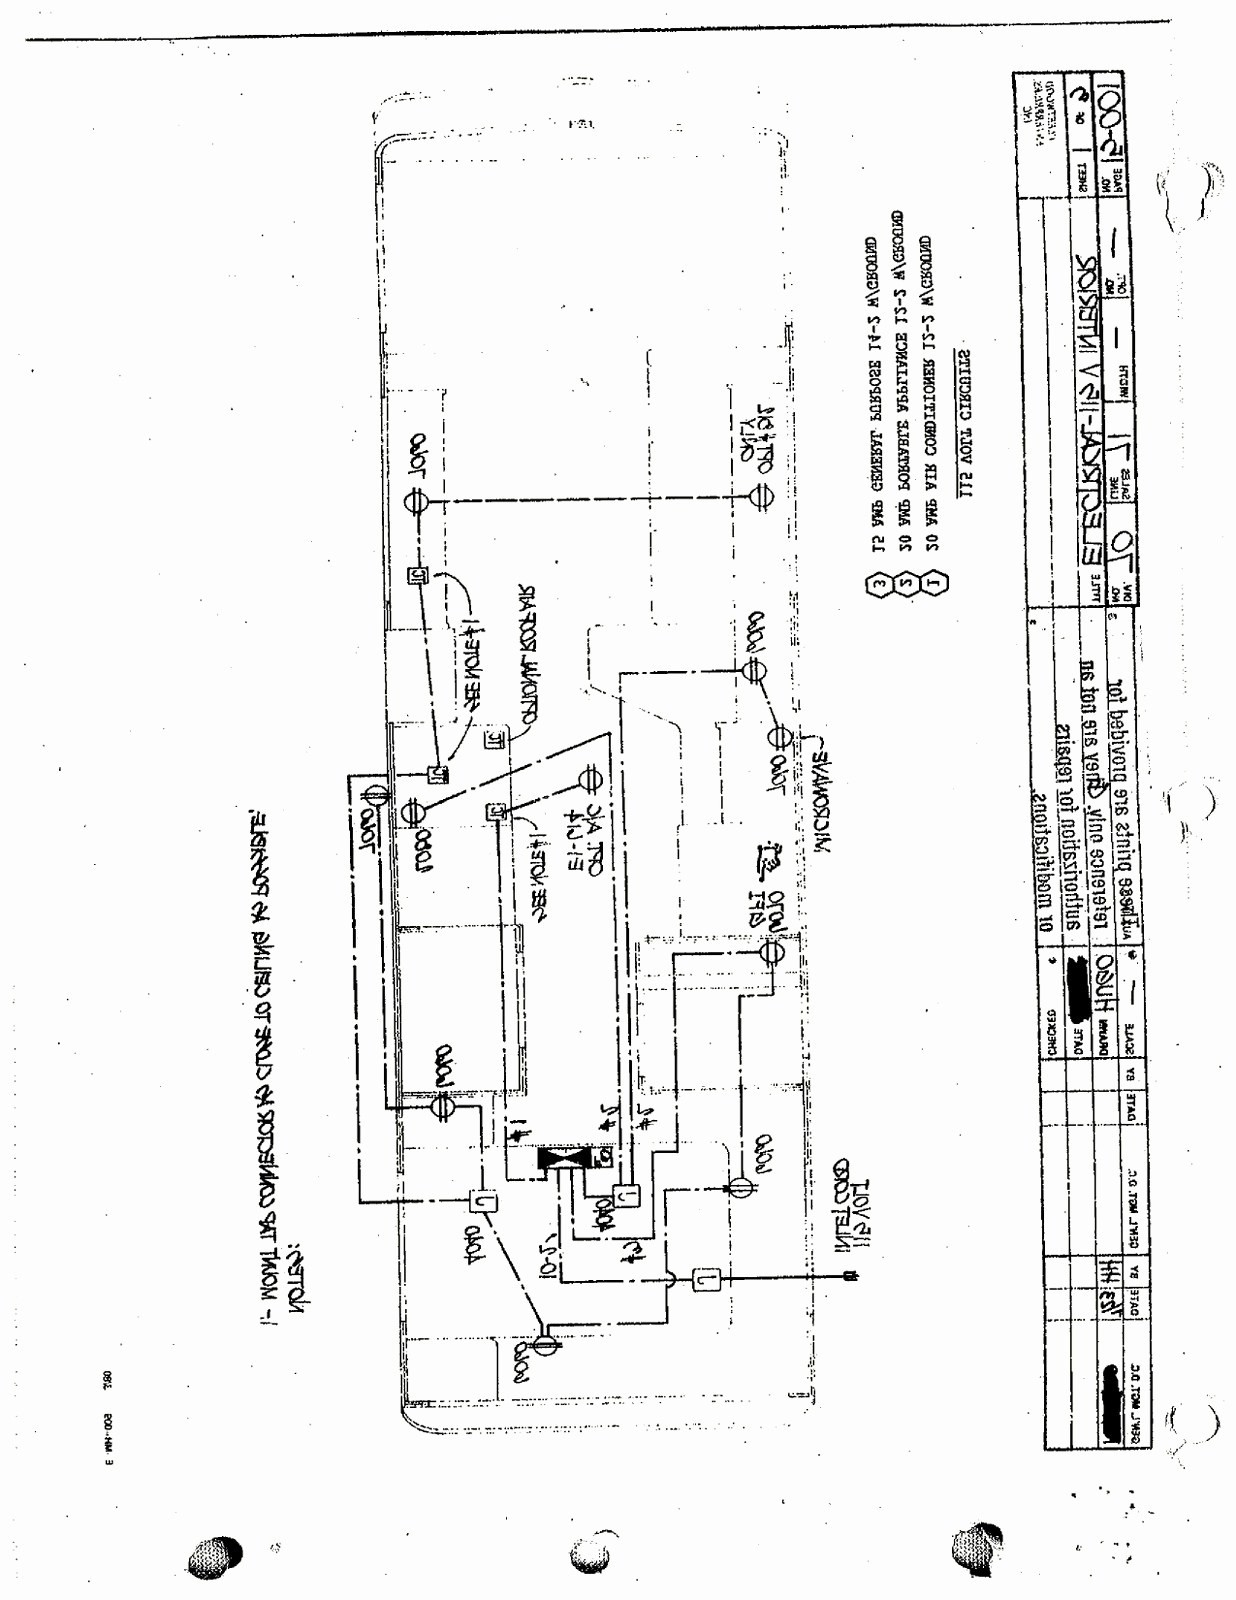 Fleetwood Motorhome Wiring Diagram